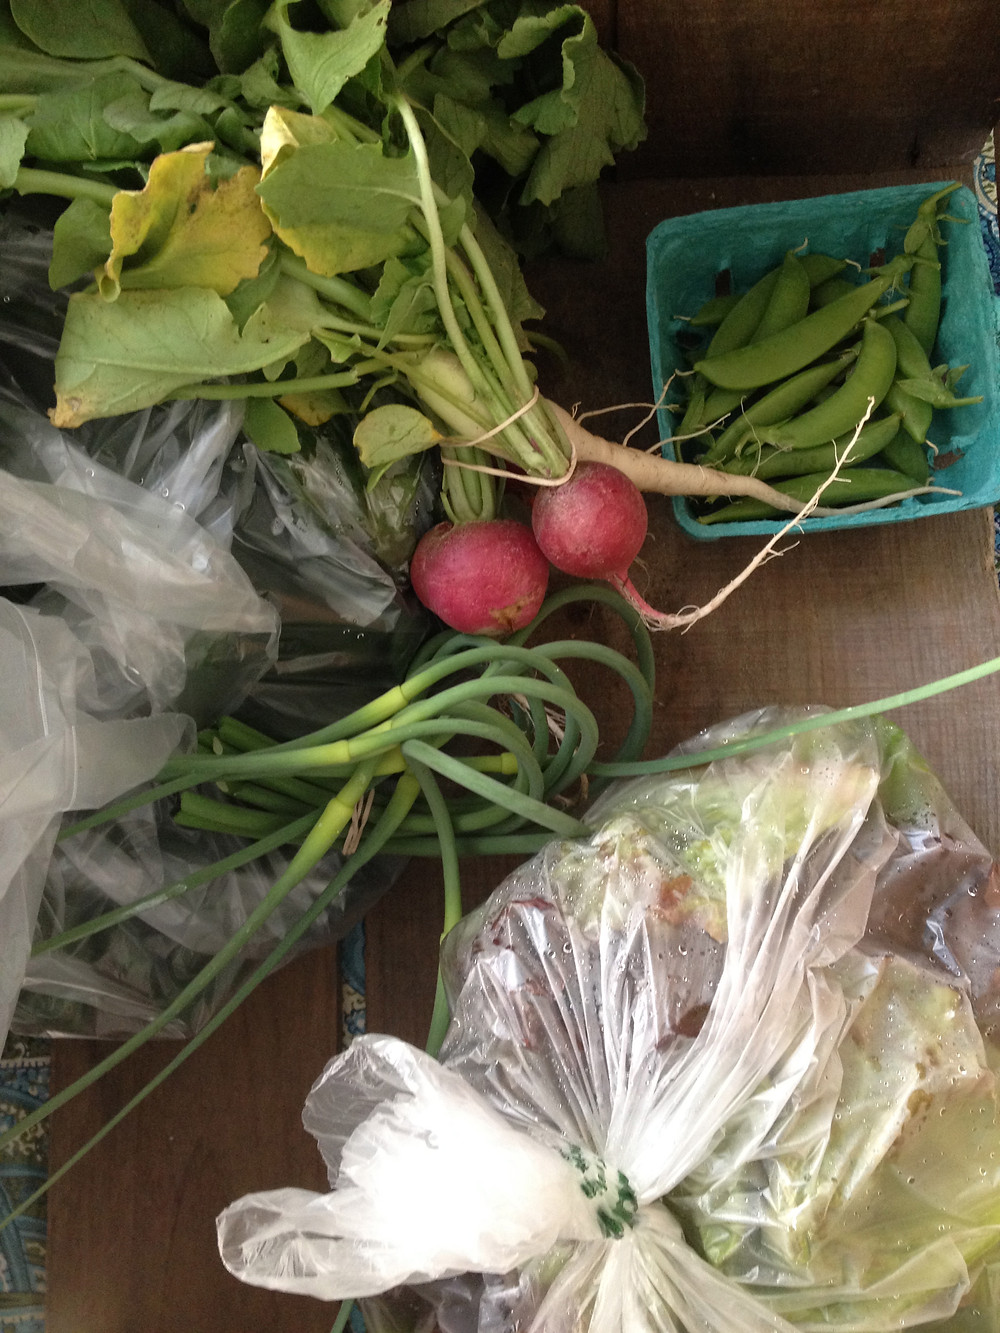 Scapes, radish, snap peas, lettuce - Peachtree Circle Farm